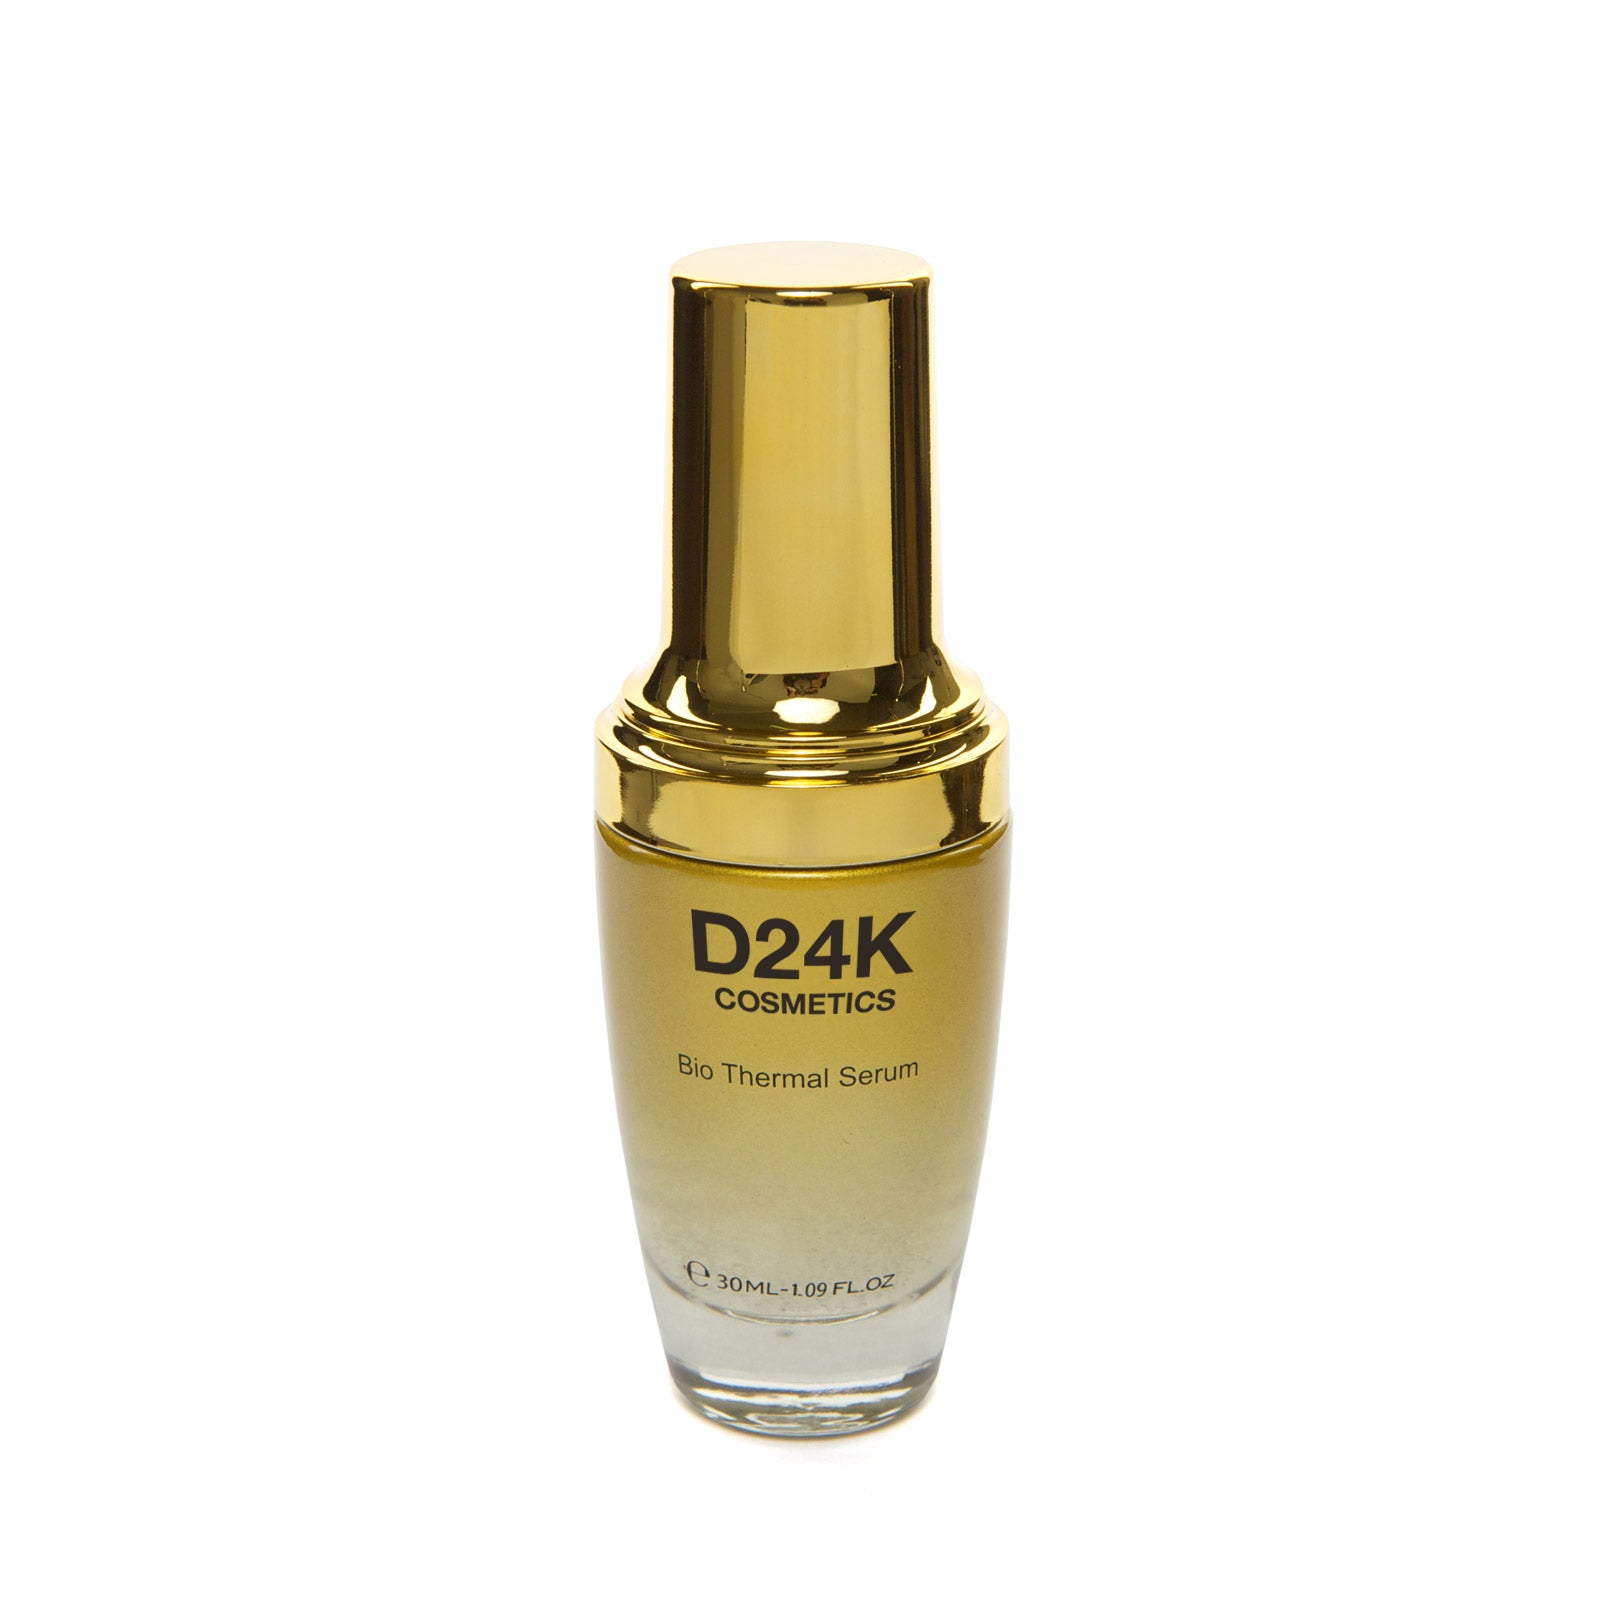 D24K - 24K Bio Thermal Serum